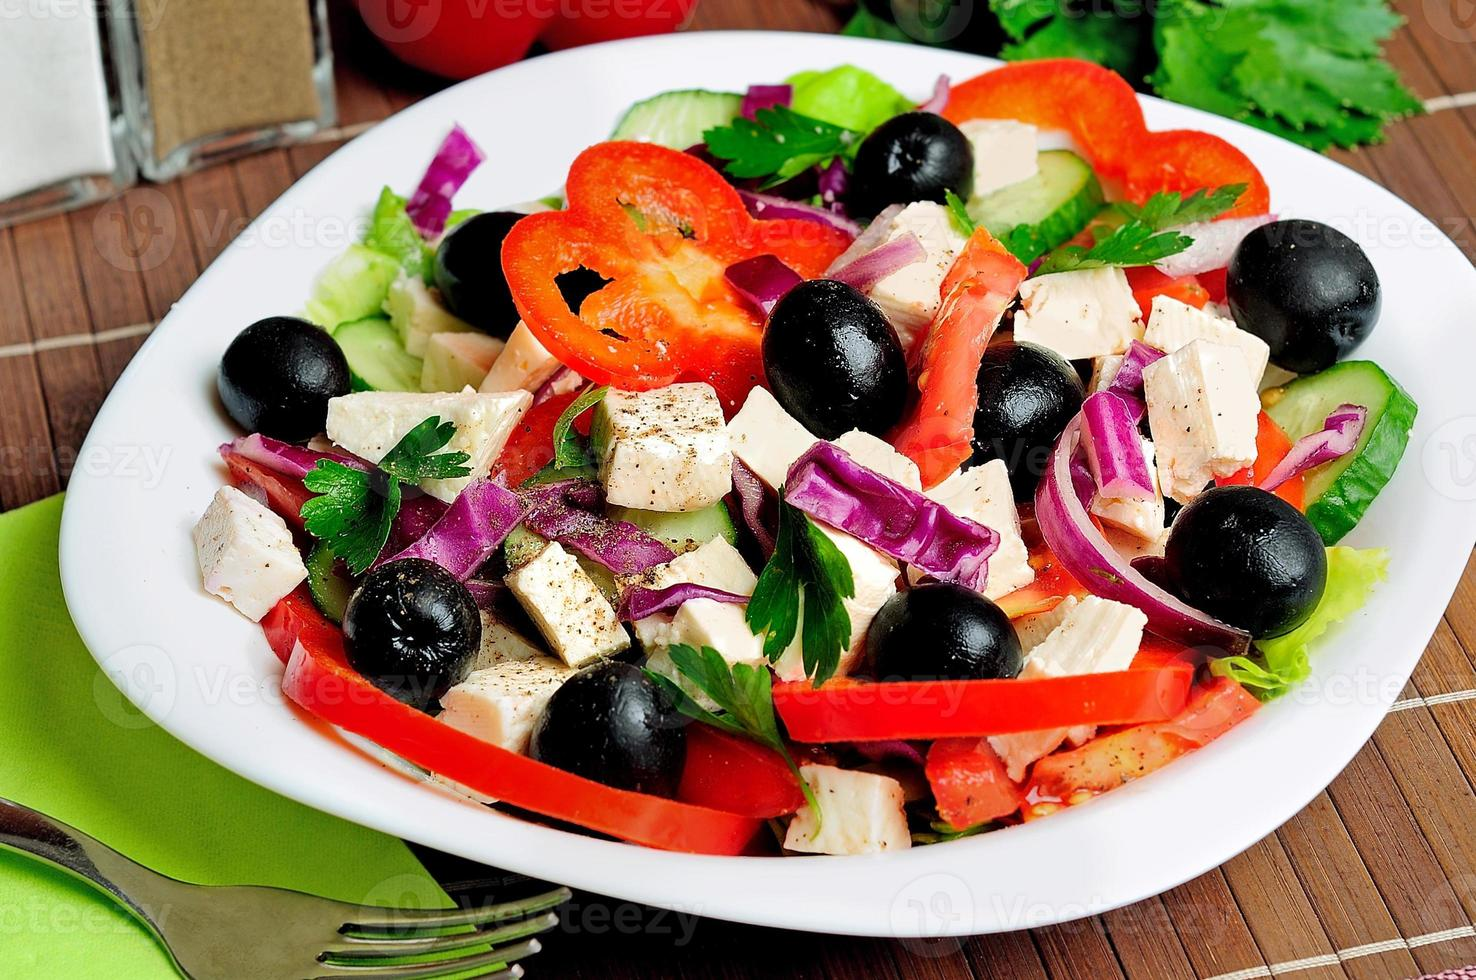 Plate with salad photo